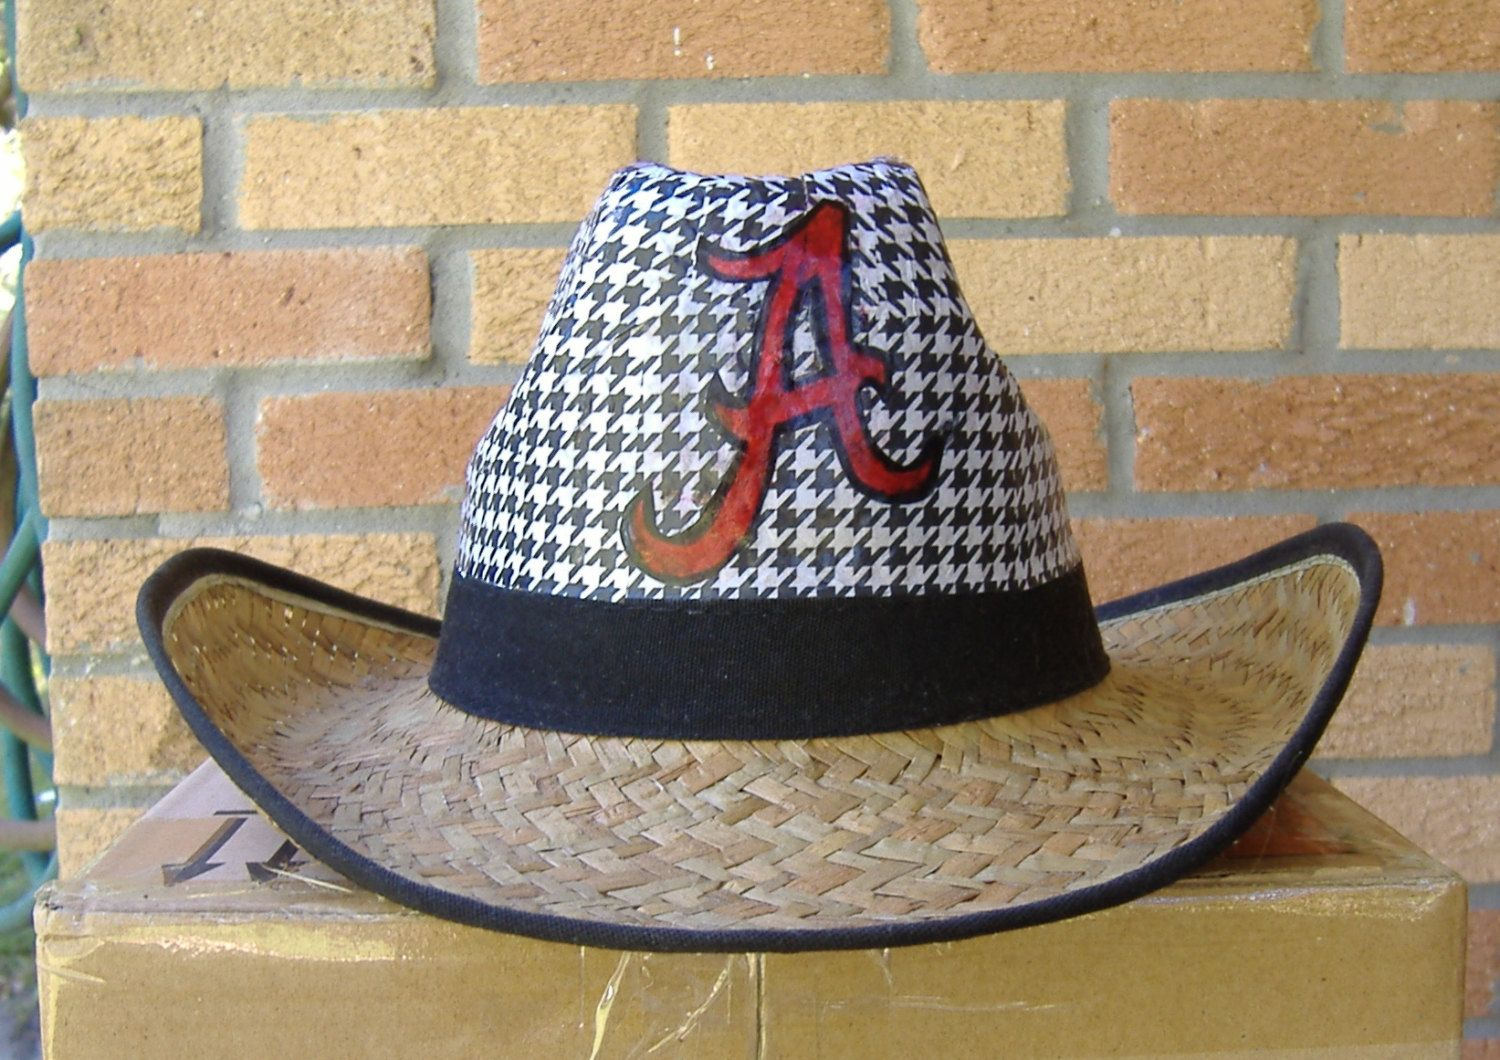 Houndstooth Alabama straw cowboy cowgirl hat - new - unisex Large - all  sales final by JerrysShoppe on Etsy a150015066a